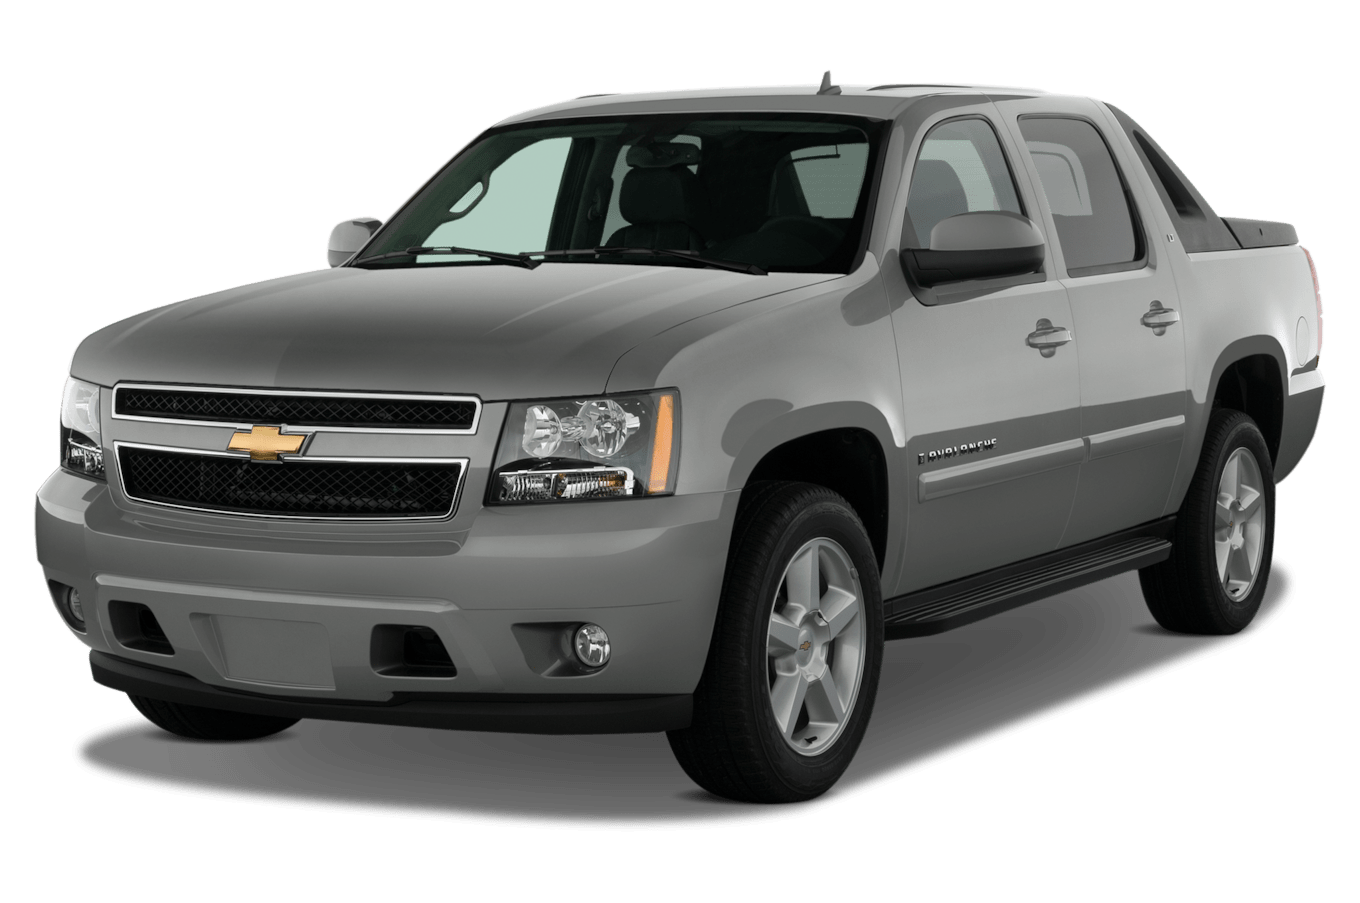 hight resolution of chevrolet avalanche trailer plug wiring wiring diagram new 2011 chevrolet avalanche reviews research avalanche prices